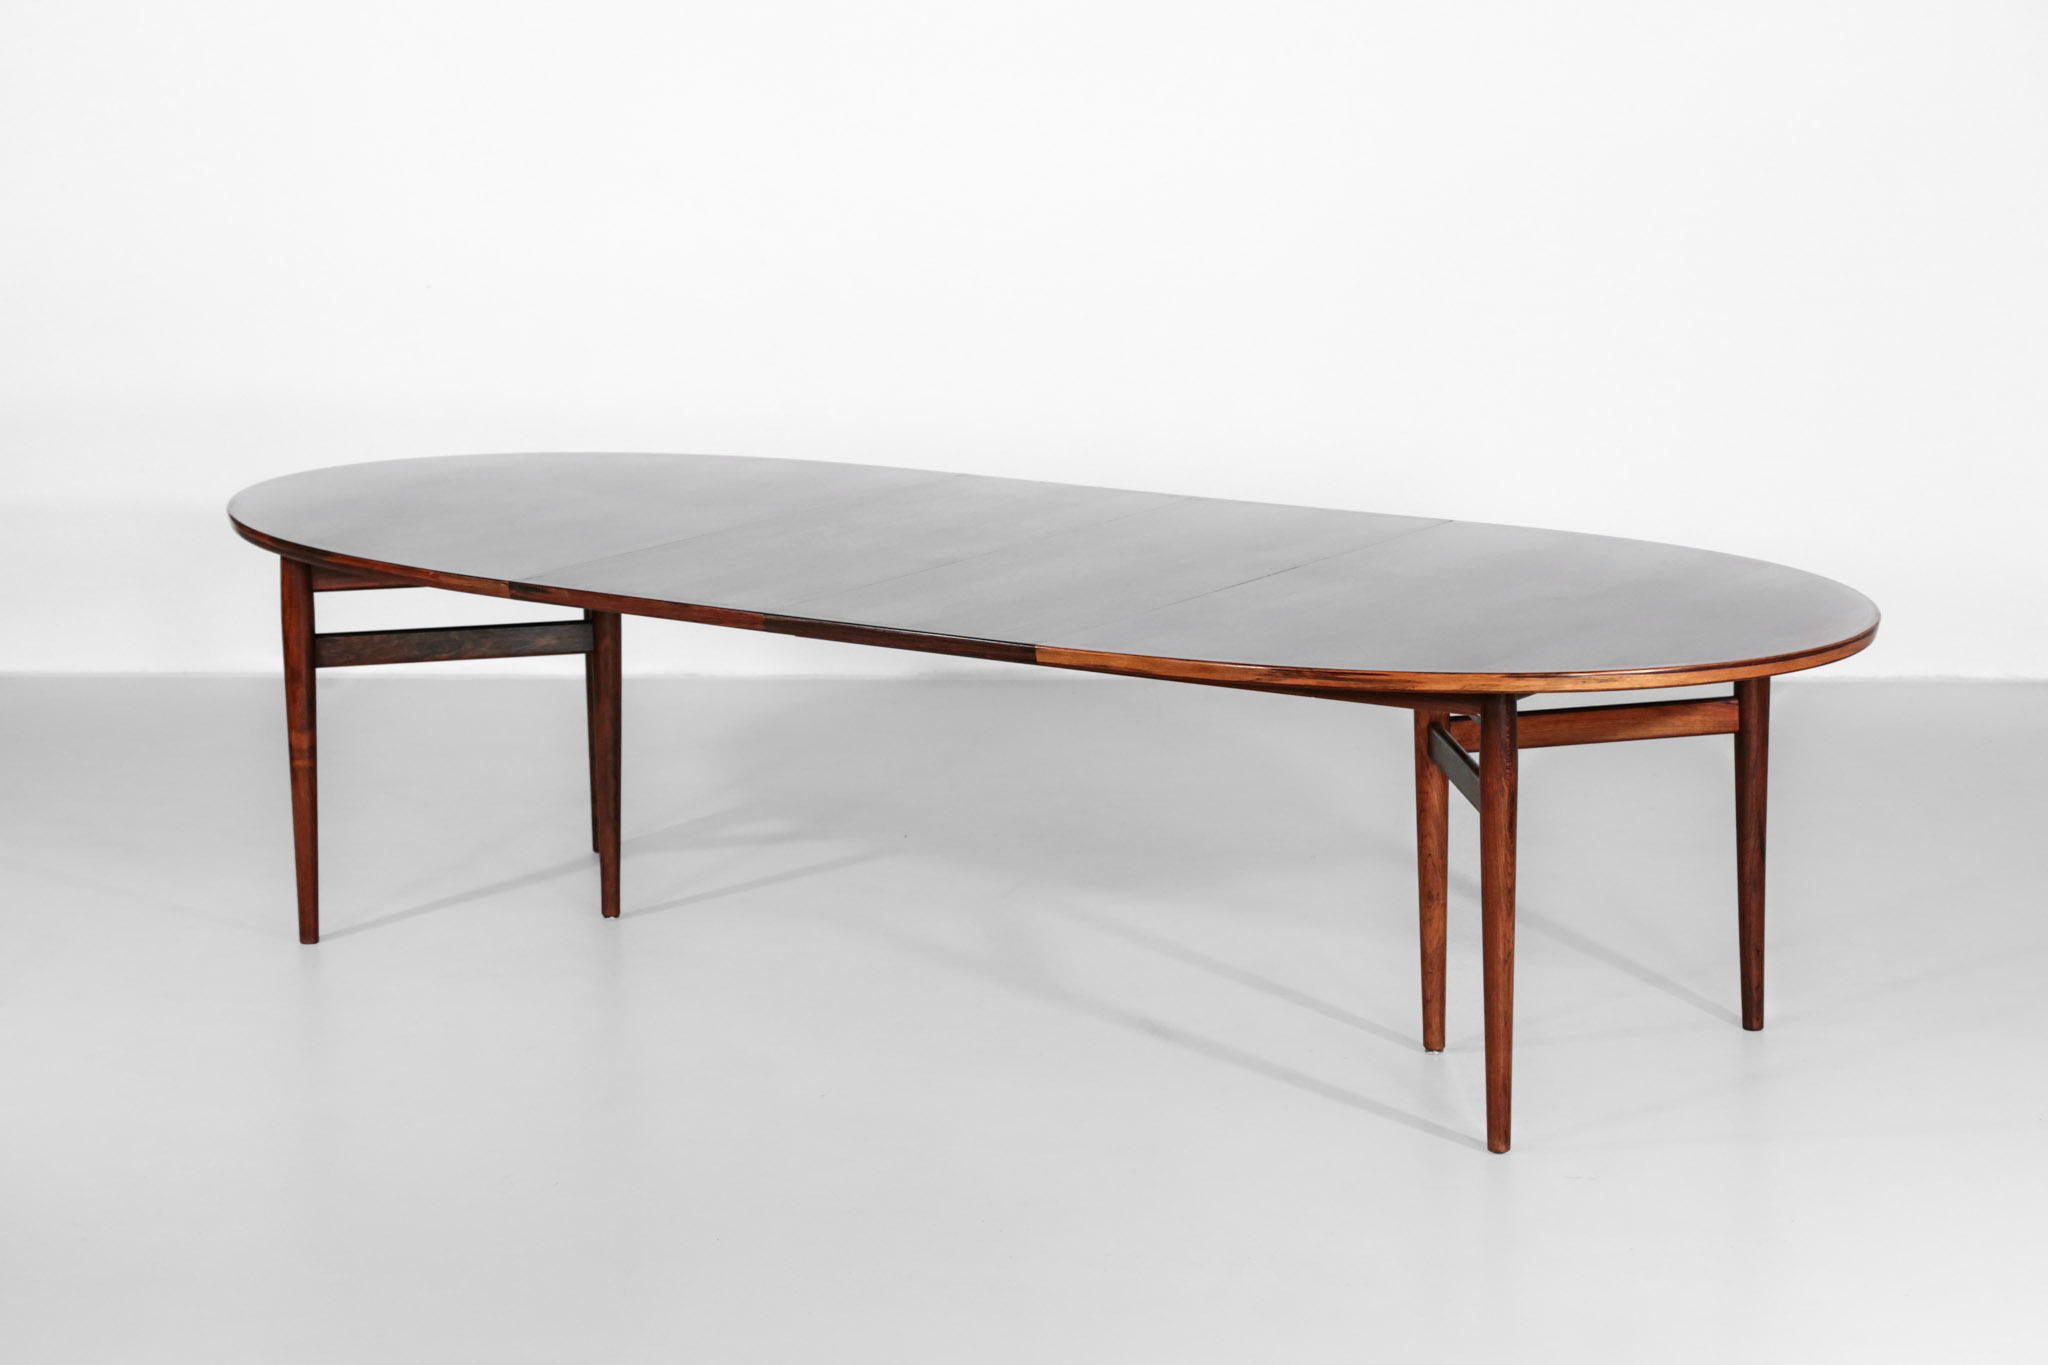 Table Manger Scandinave Large Arne Vodder Dining Table Model 212 In Rosewood Denmark